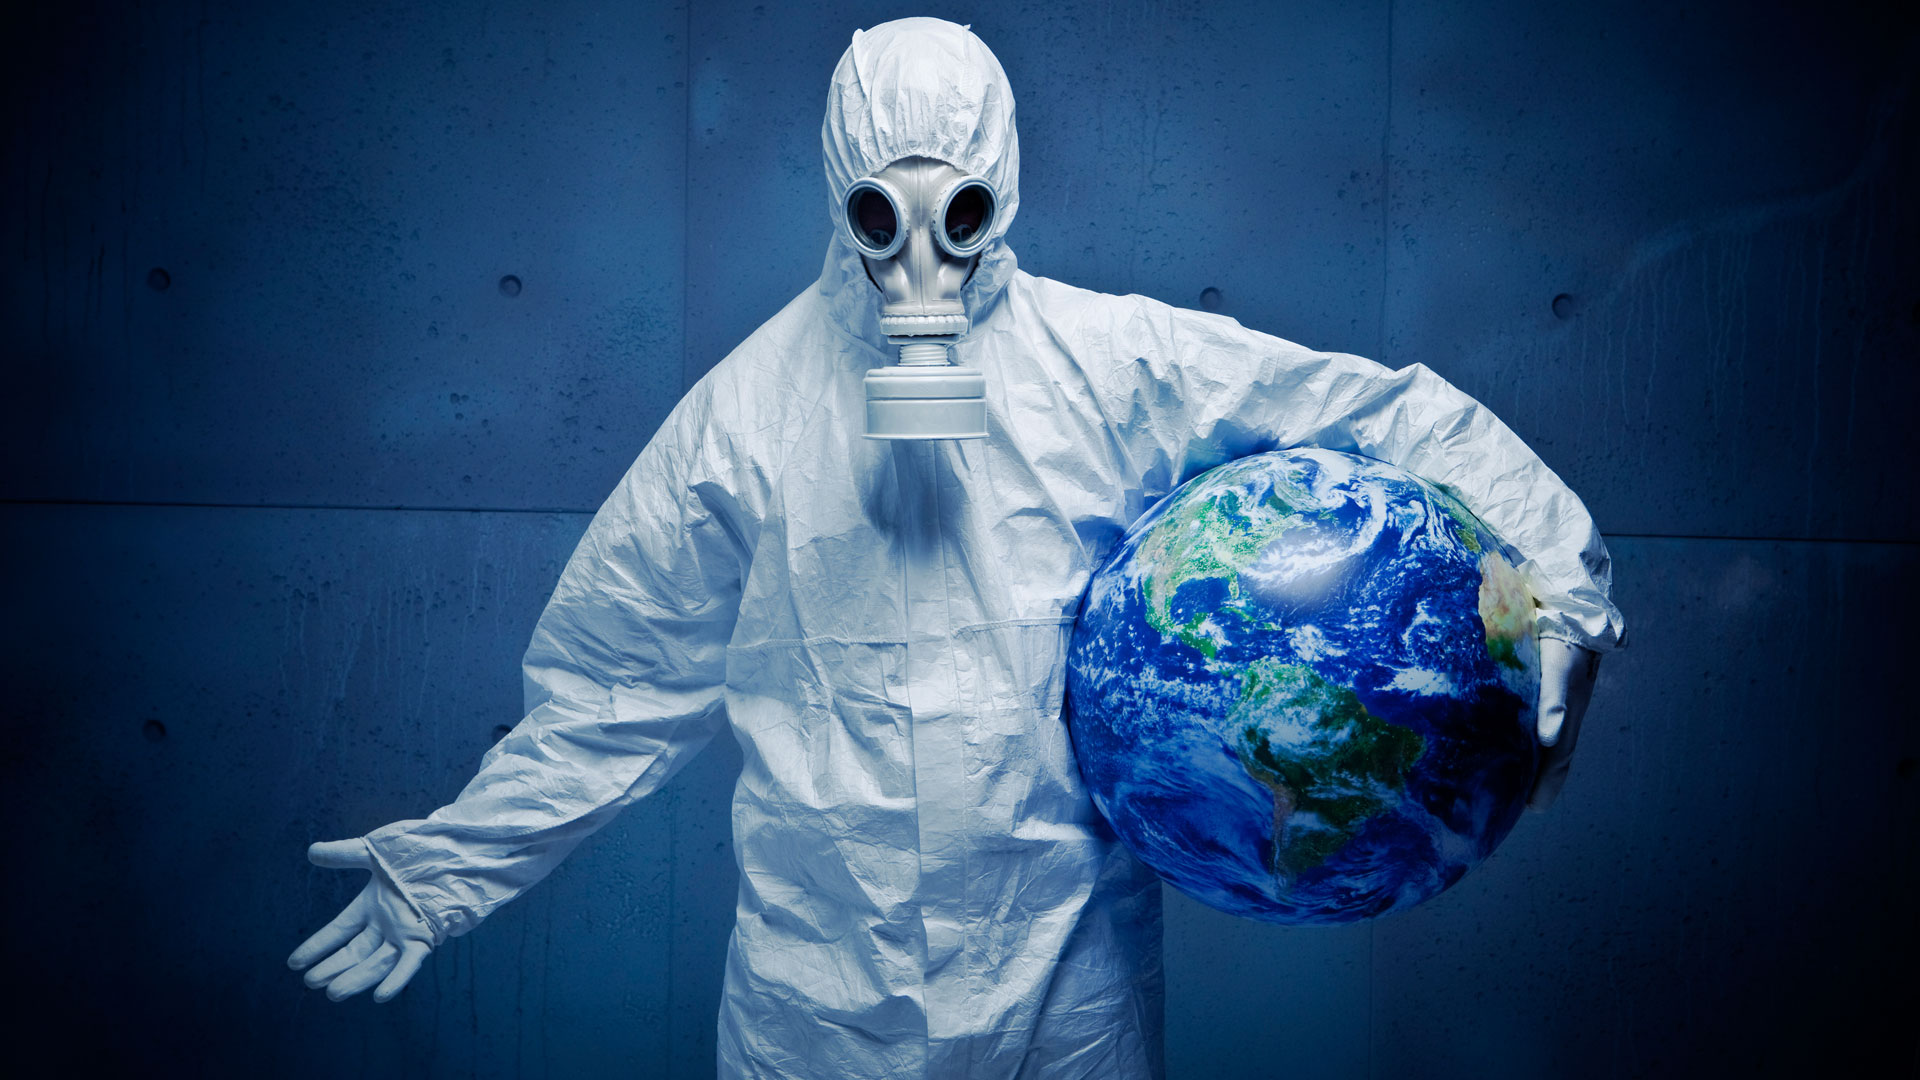 2020People_A_man_in_a_white_protective_suit_saves_the_planet_from_coronavirus_covid-19_142395_